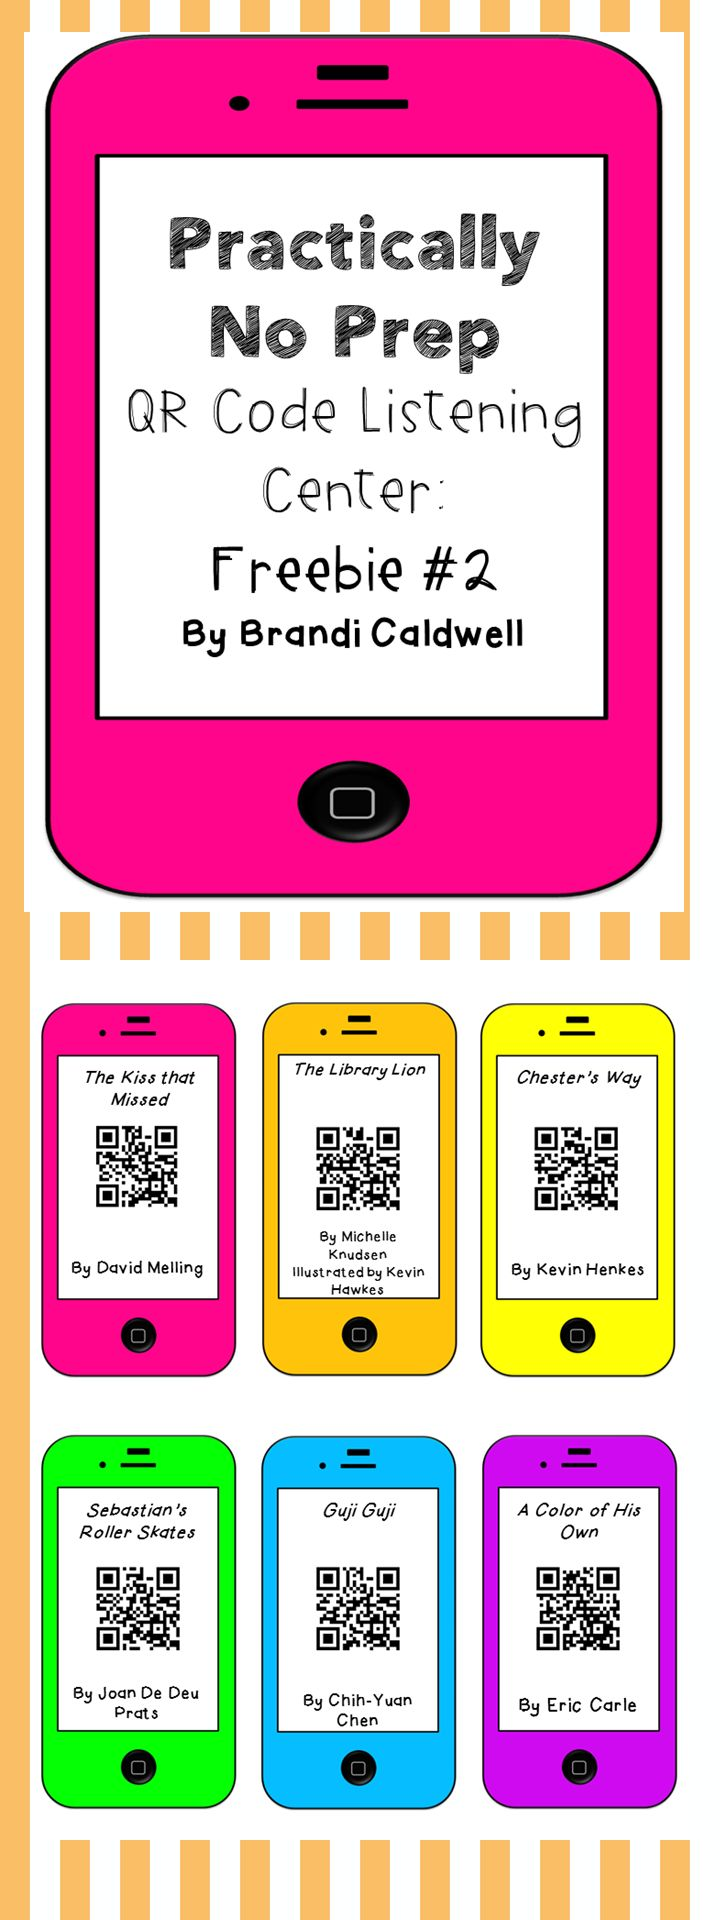 FREEBIE! Practically No Prep QR code listening center. Print these adorable QR codes and then watch as your students beg to work at this center. Implement it, like, yesterday.